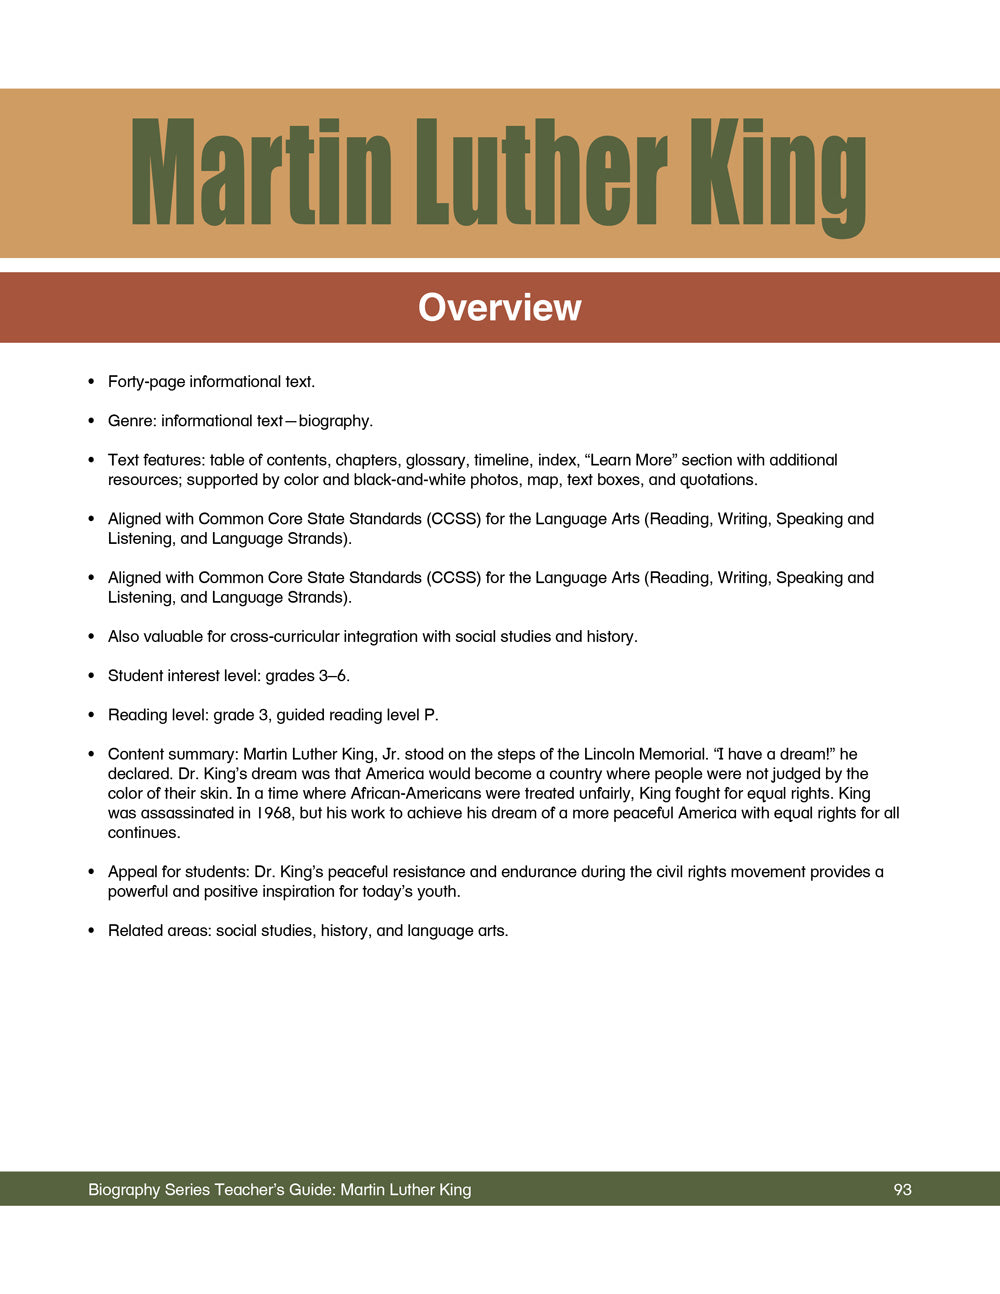 Martin Luther King, Jr. Teacher's Guide